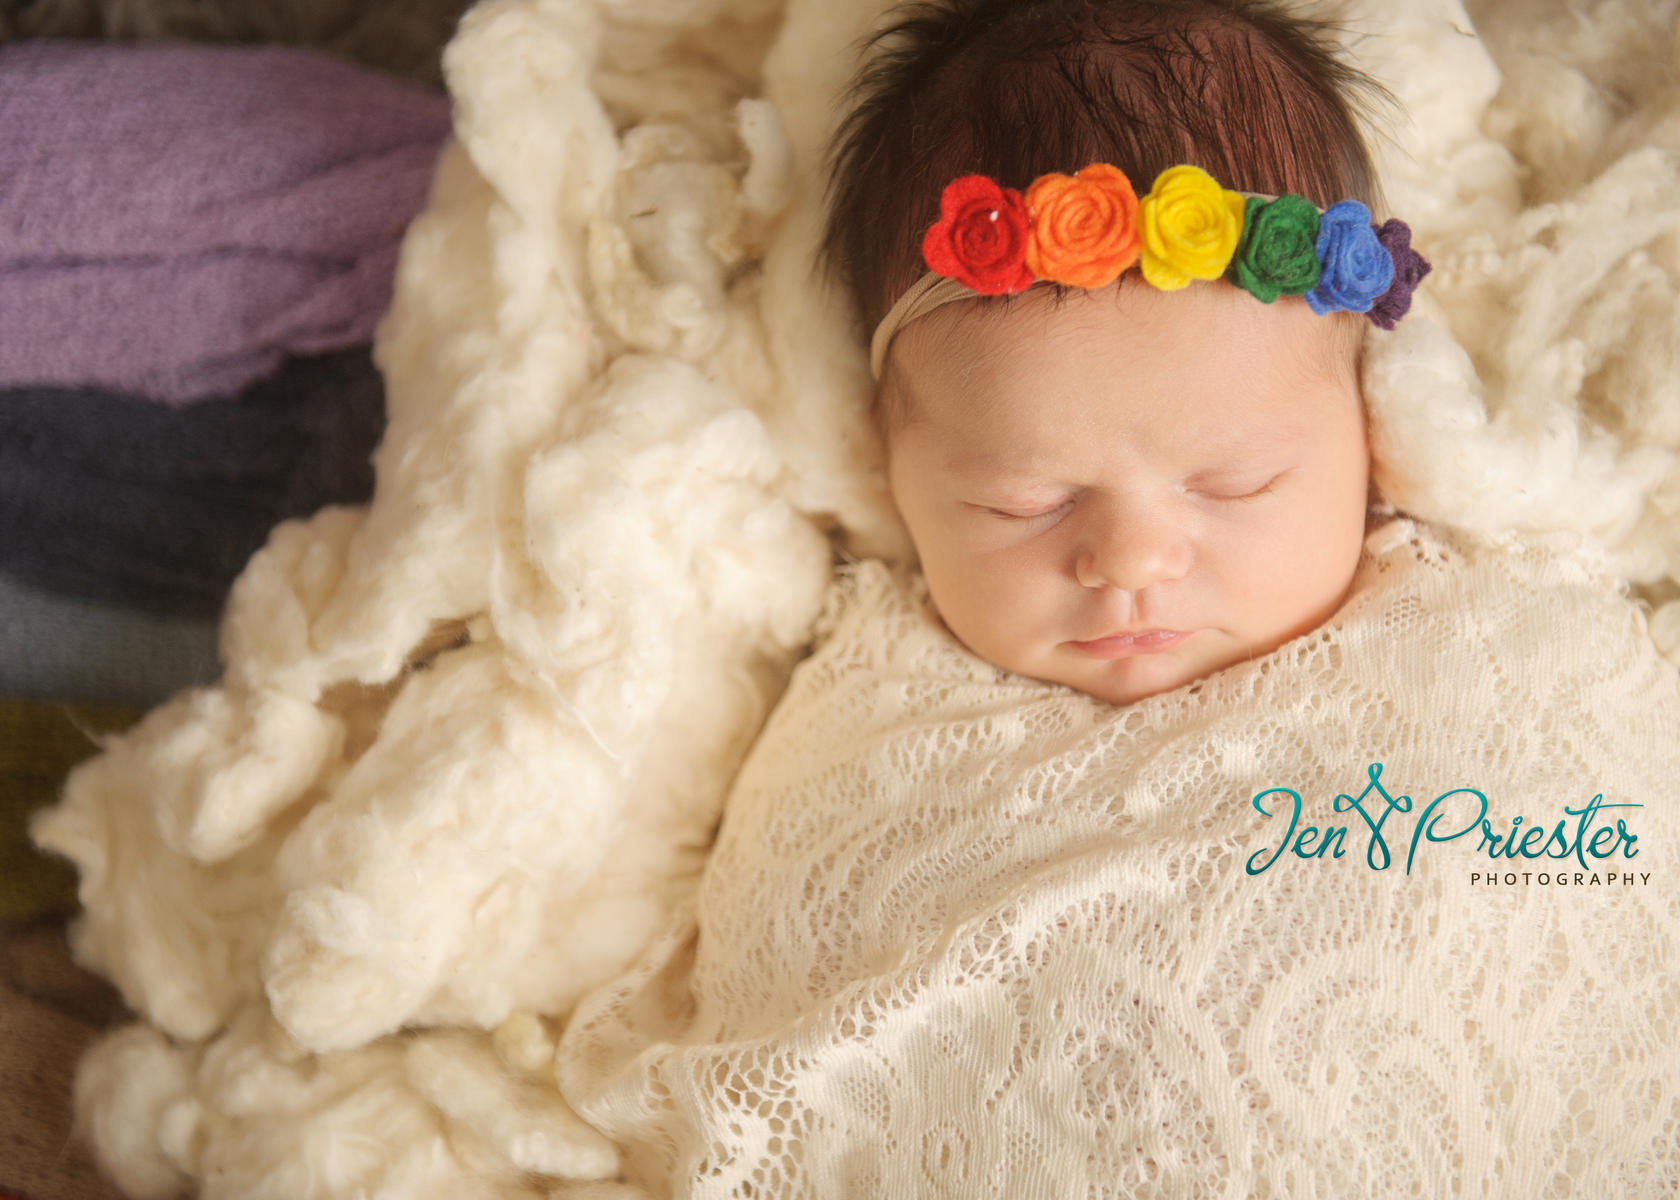 Rainbow Baby Cloud Photo by Jen Priester